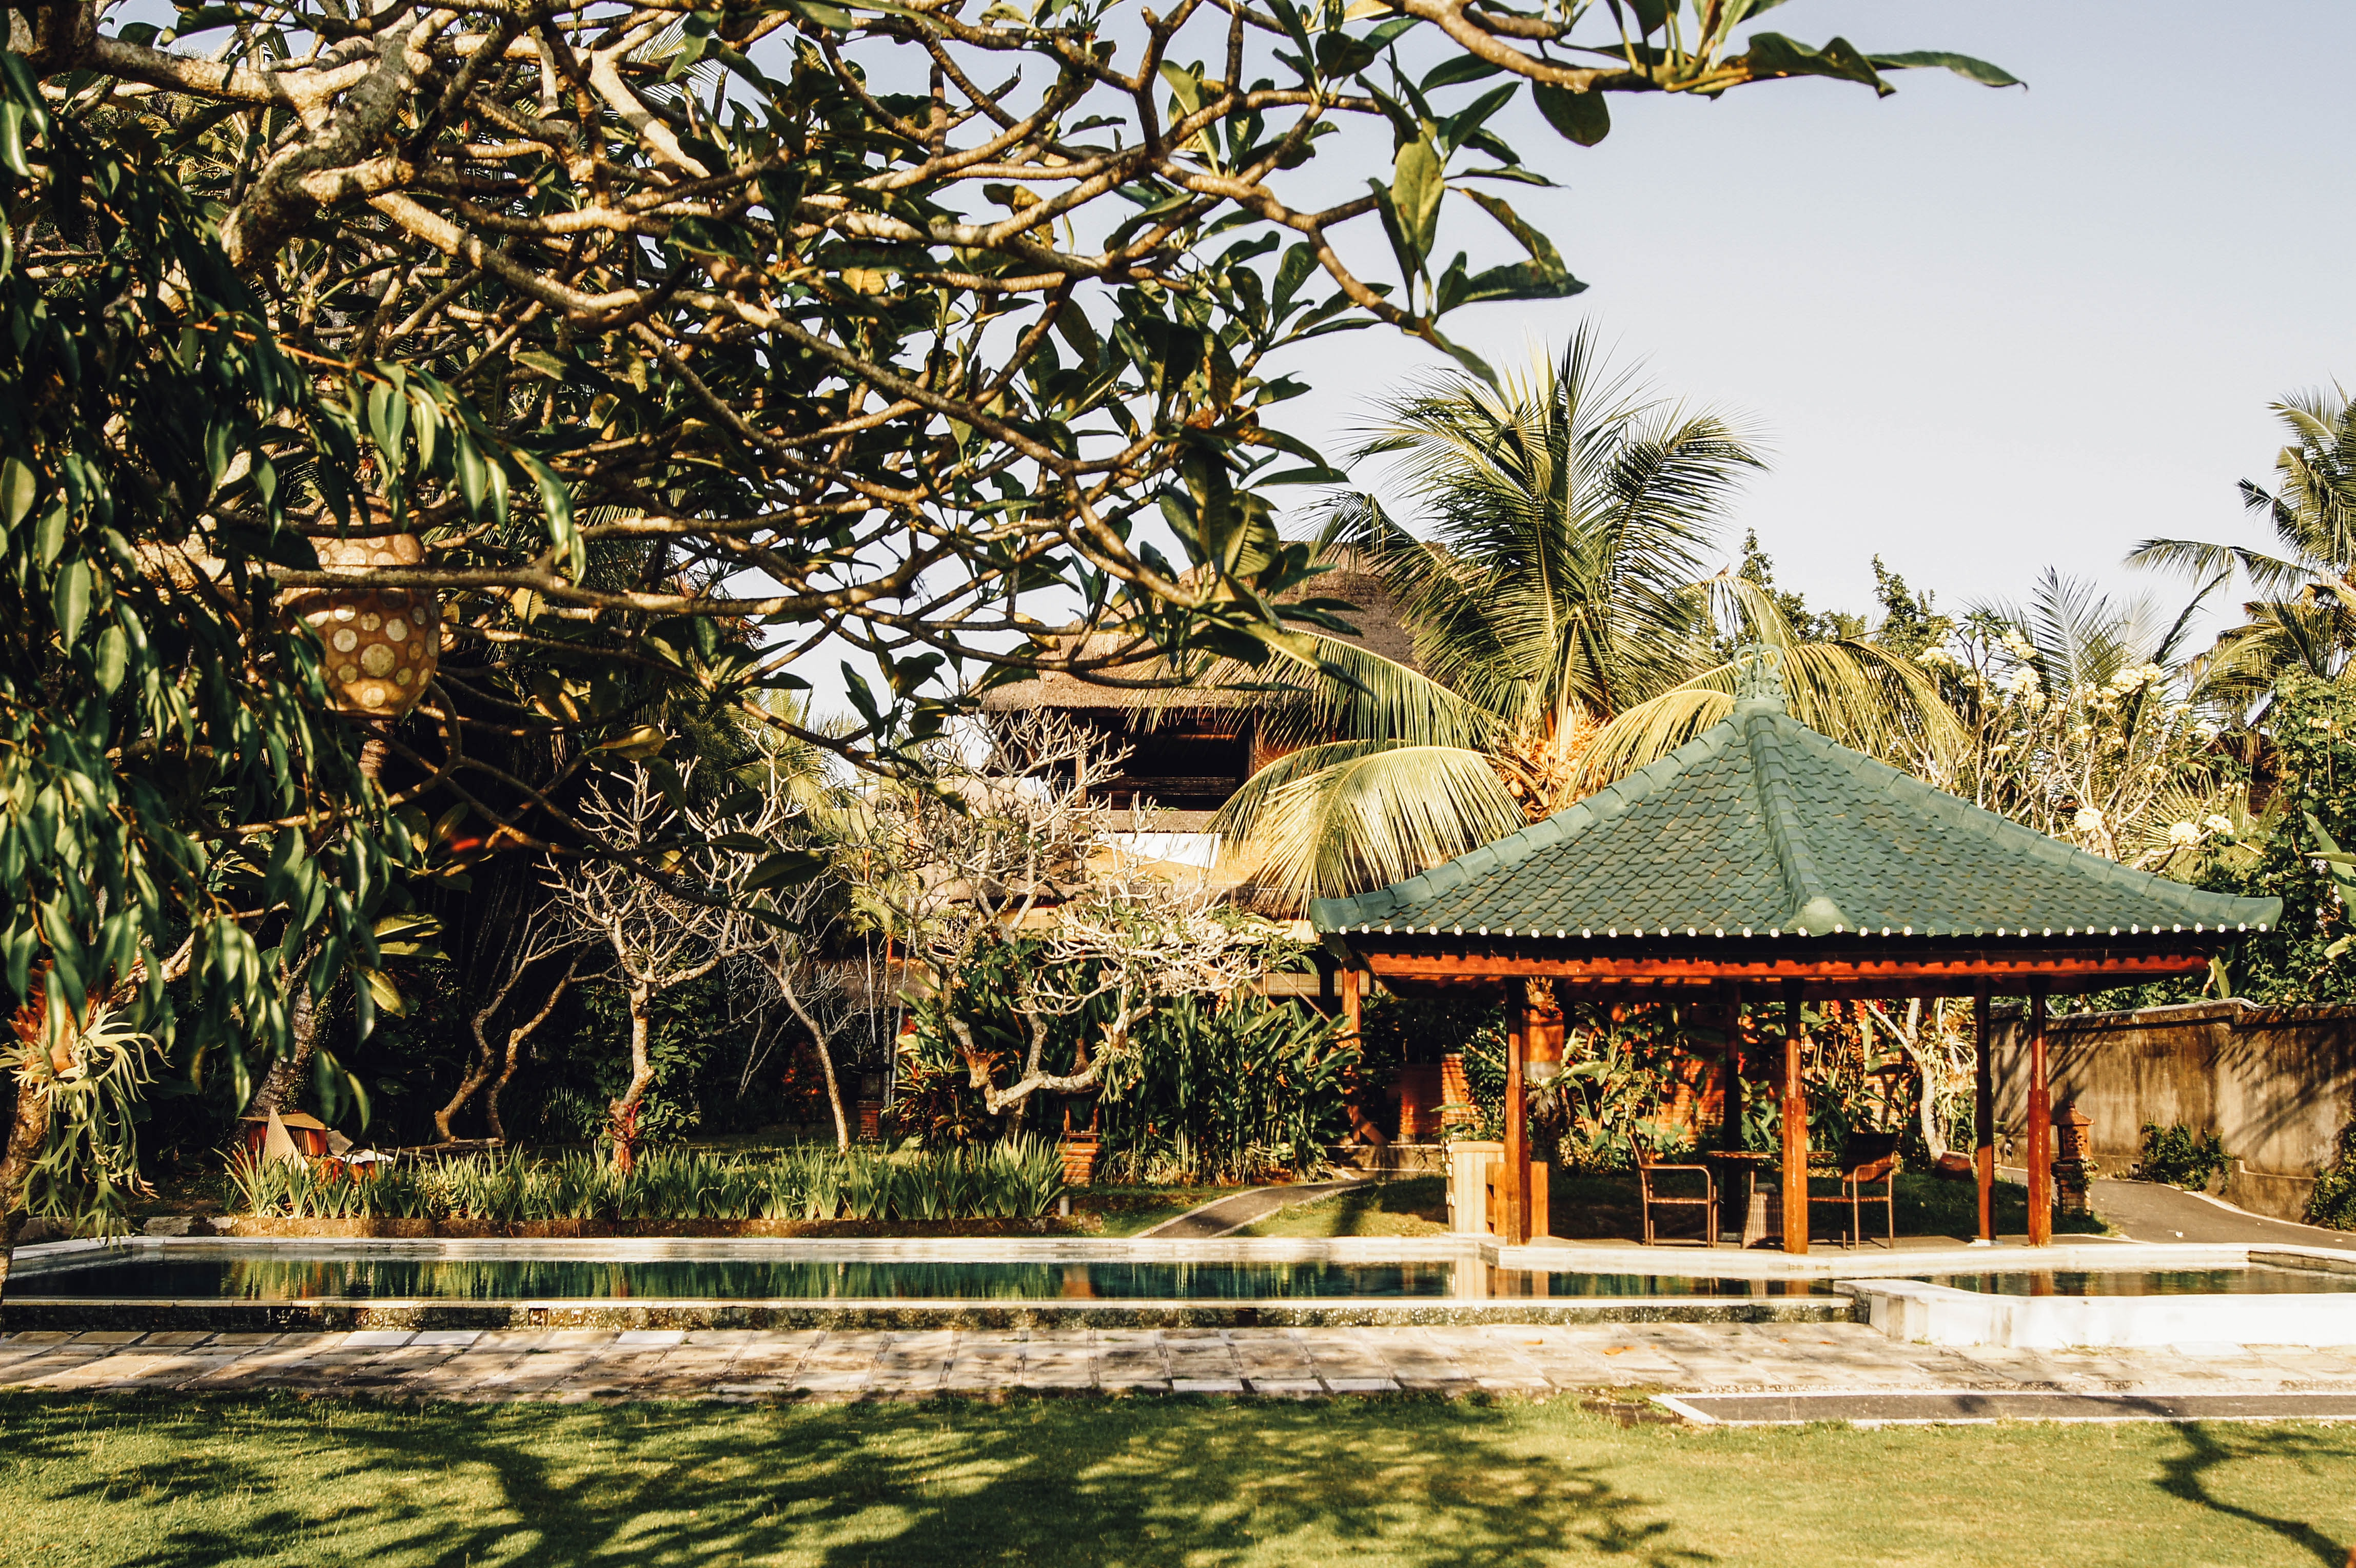 brown gazebo beside swimming pool surrounded with trees during daytime